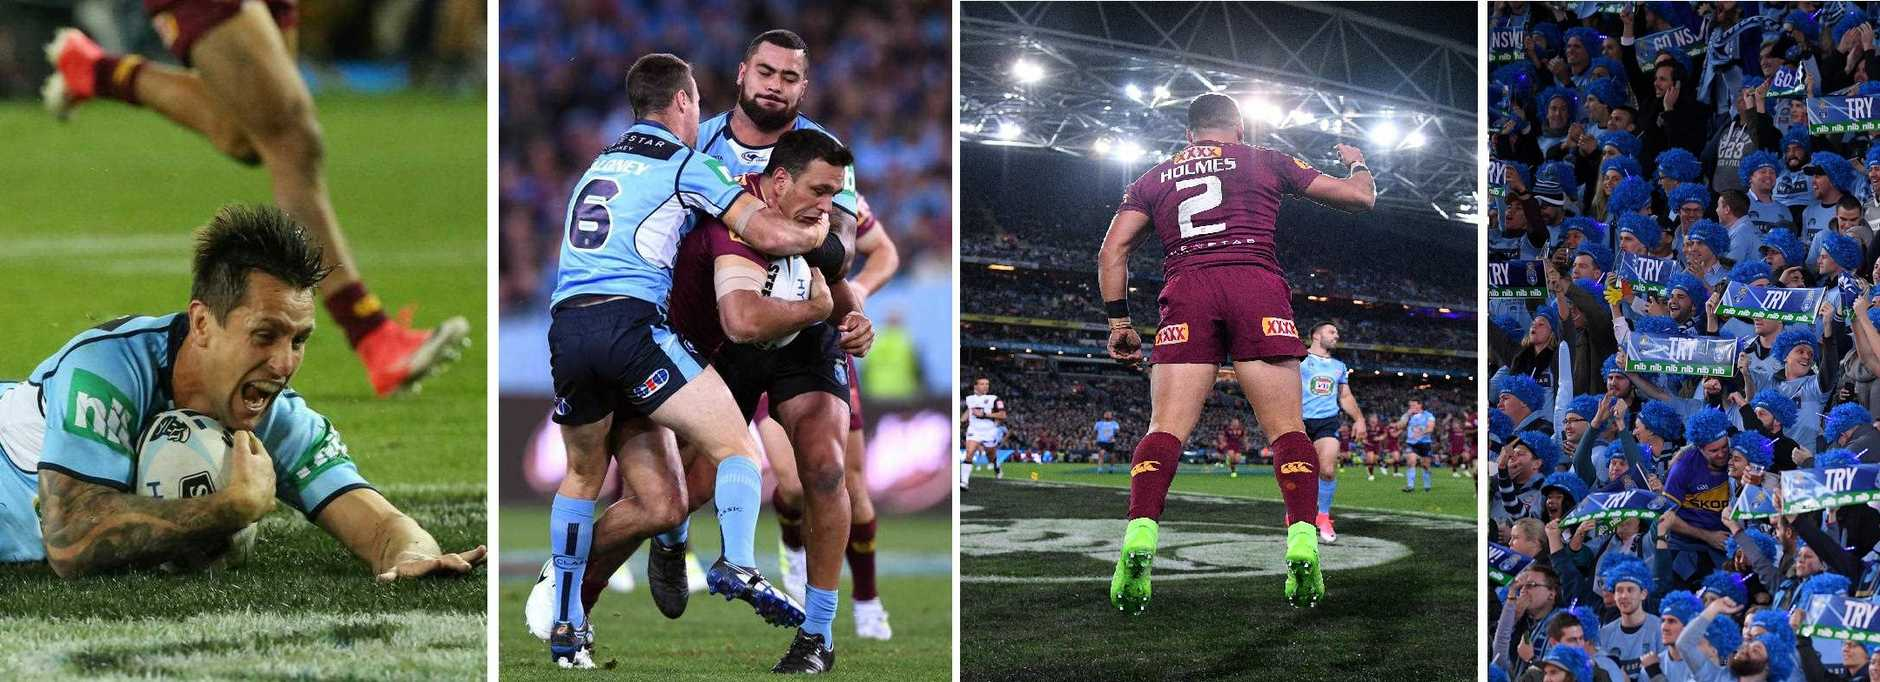 Iconic moments from State of Origin Game Two